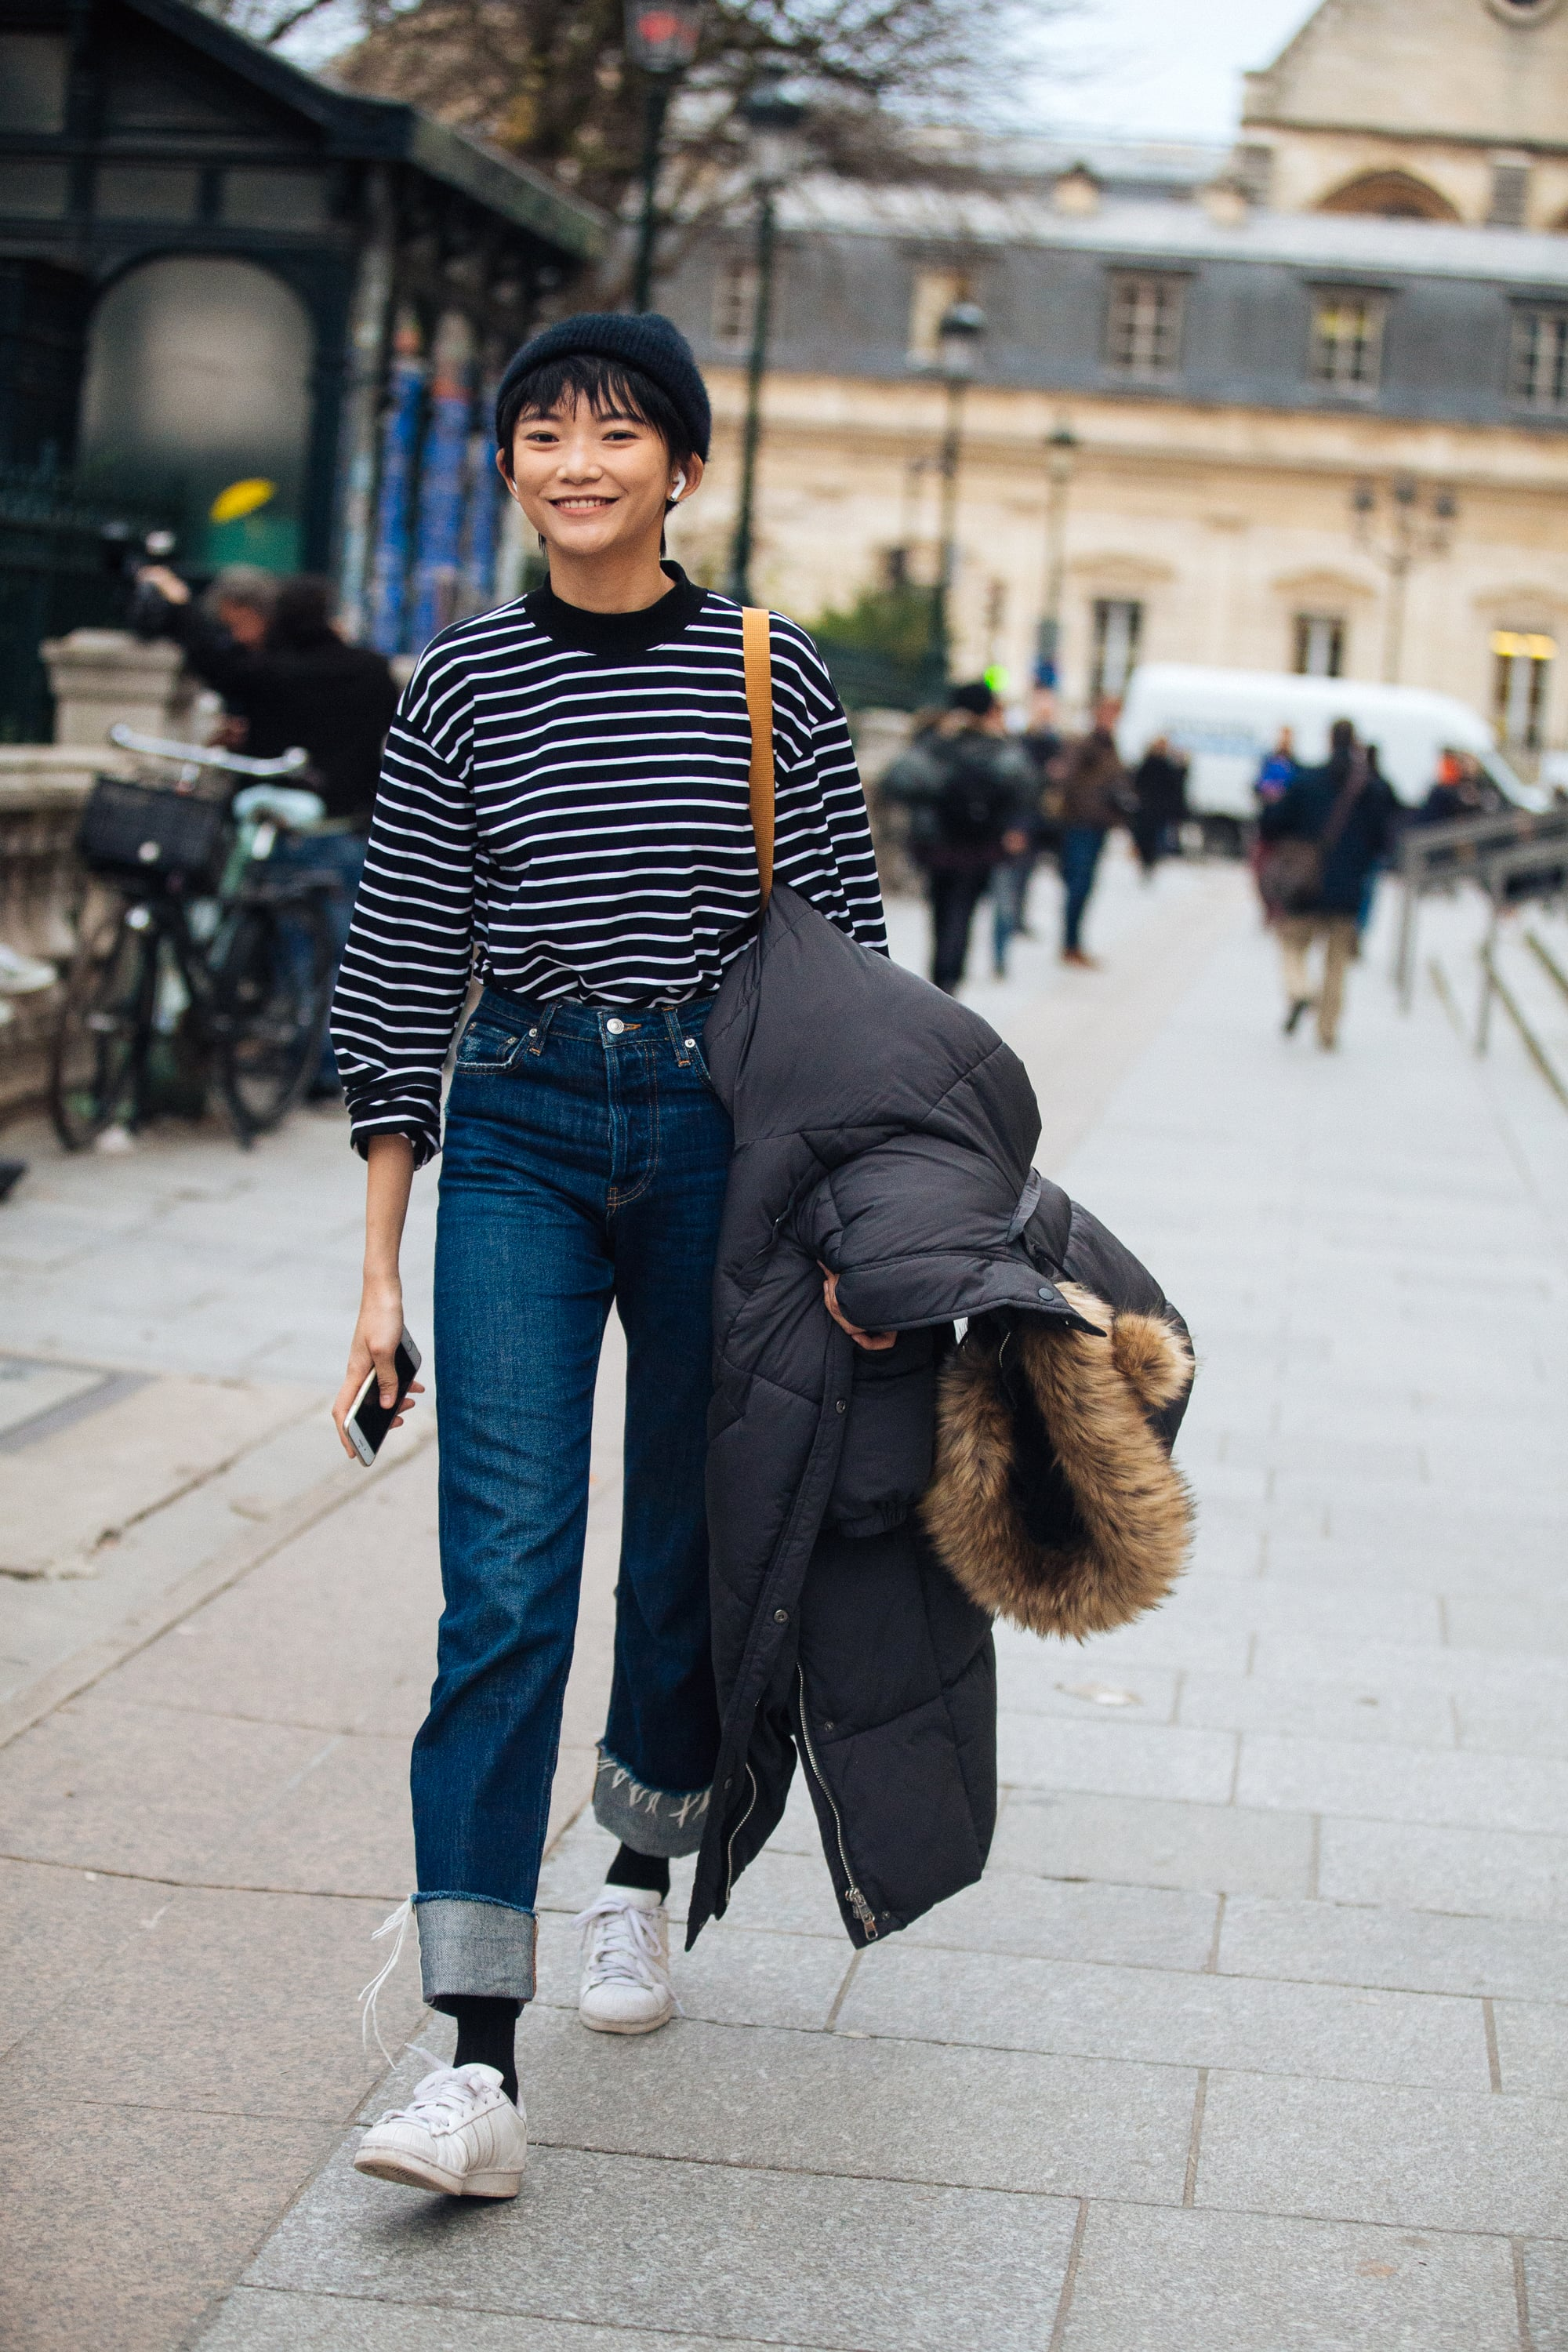 A striped shirt, jeans and sneakers are